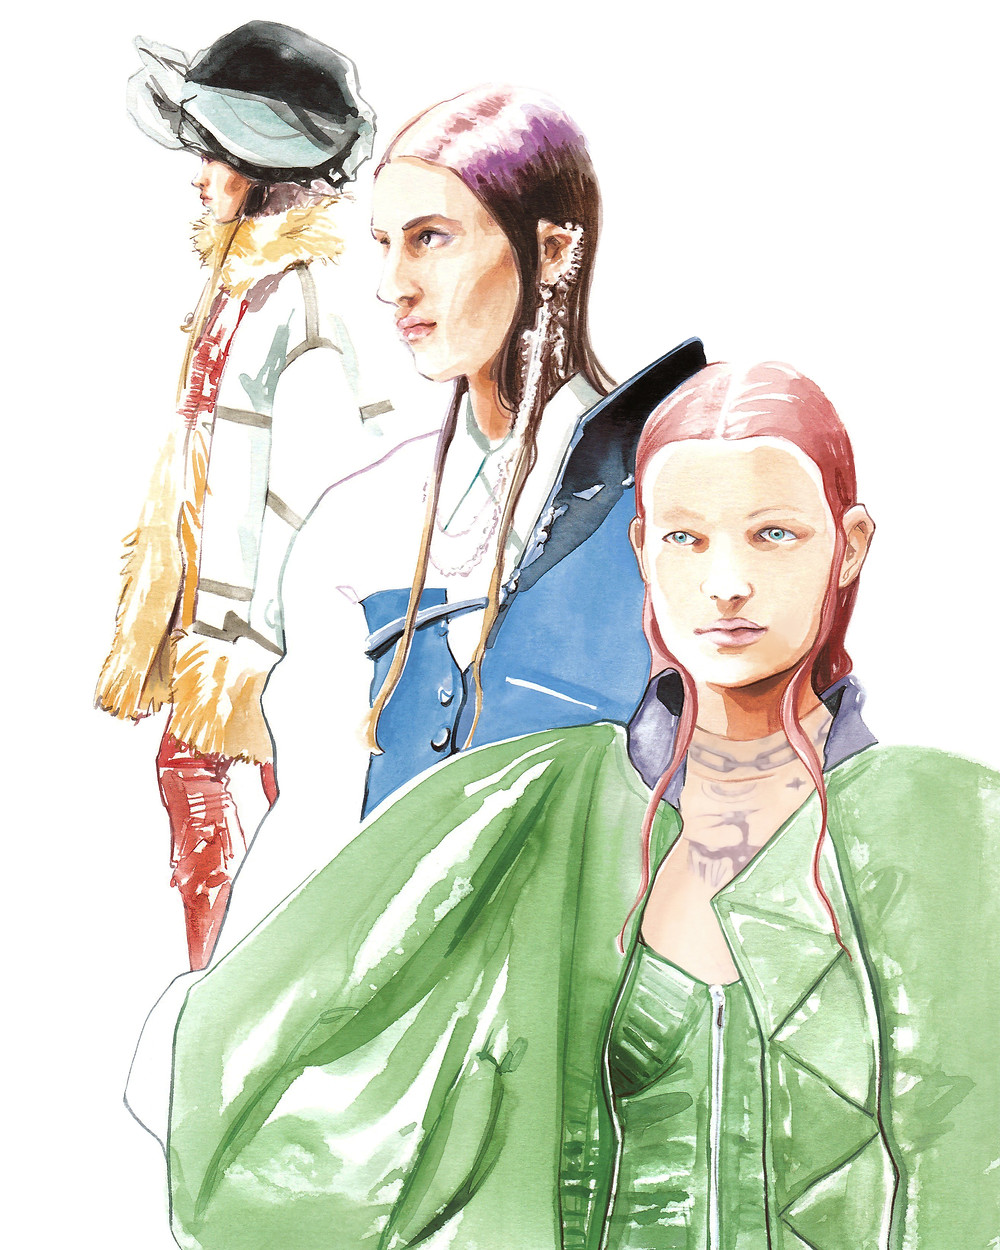 The much-awaited Jean Paul Gaultier Haute Couture collection ft. Sacai